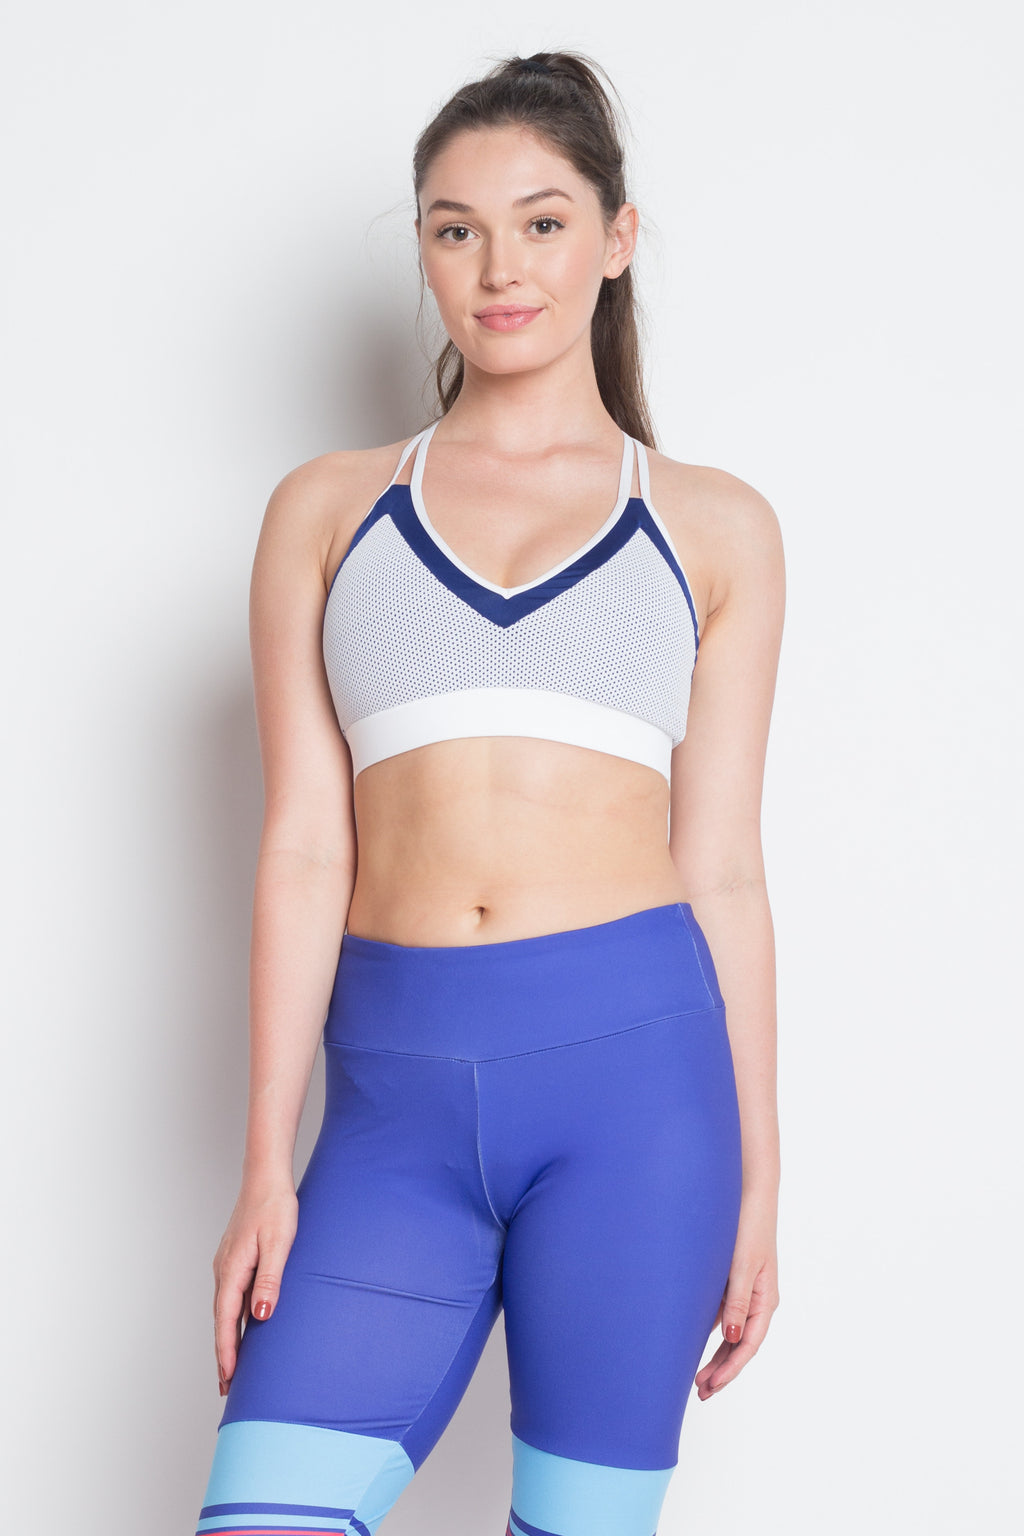 Two Tone quest sports bra - wearevel